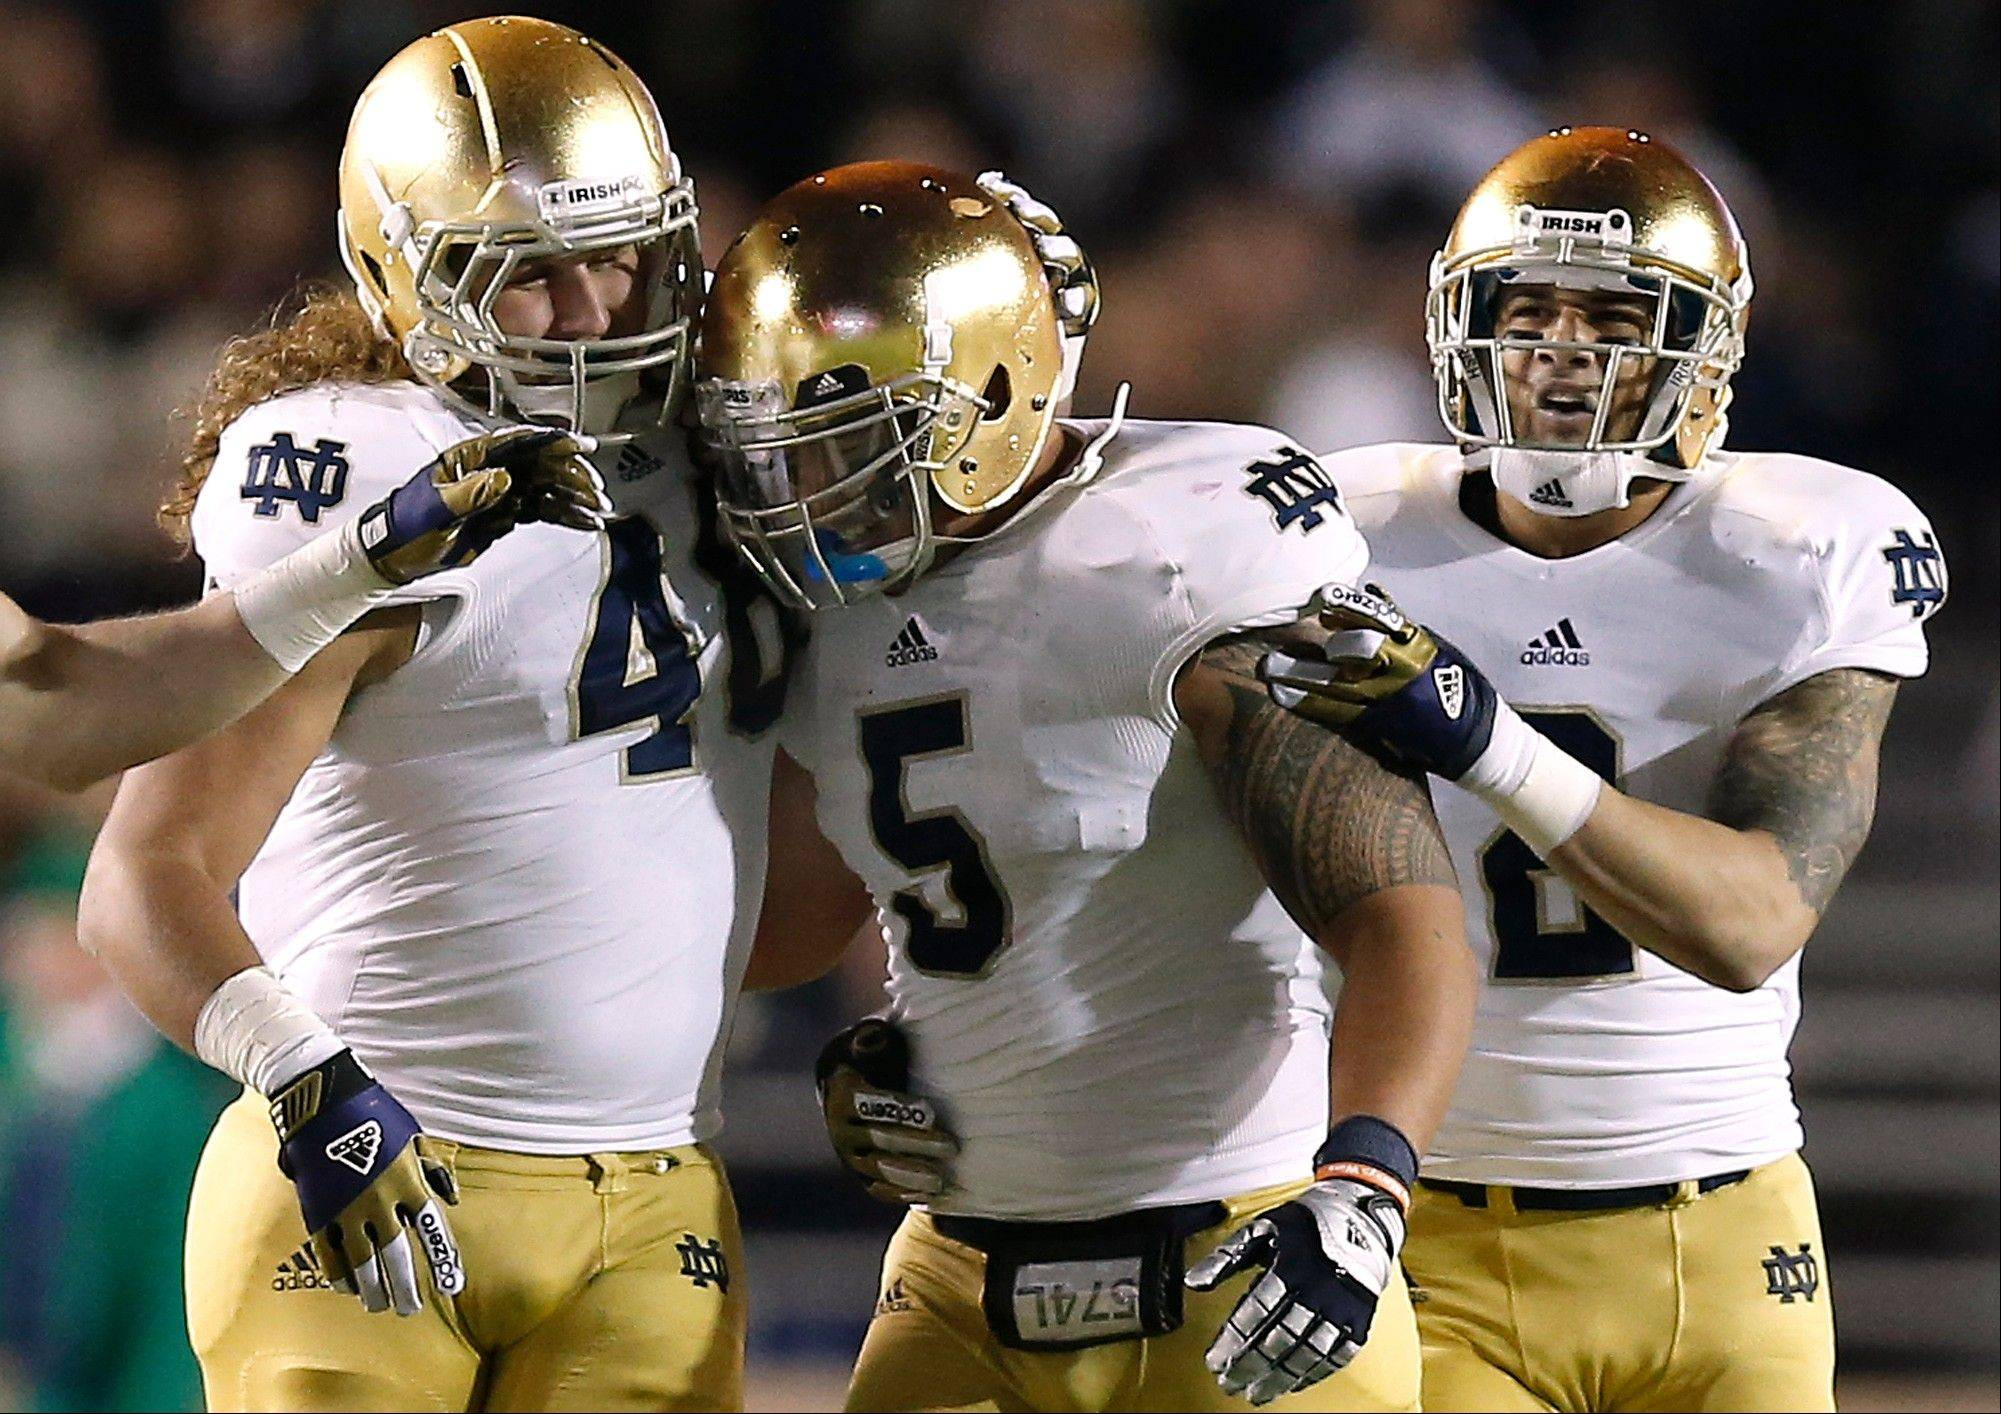 Notre Dame linebacker Manti Te'o is congratulated by teammates Dan Fox and Bennett Jackson, right, after his interception Saturday during the second half of Notre Dame's 21-6 win over Boston College in Boston. Te'o will play at Notre Dame Stadium for the final time Saturday, giving Fighting Irish fans the chance to celebrate one of the best linebackers in the history of the storied program and thank him for leading the team to one of its best seasons in decades.